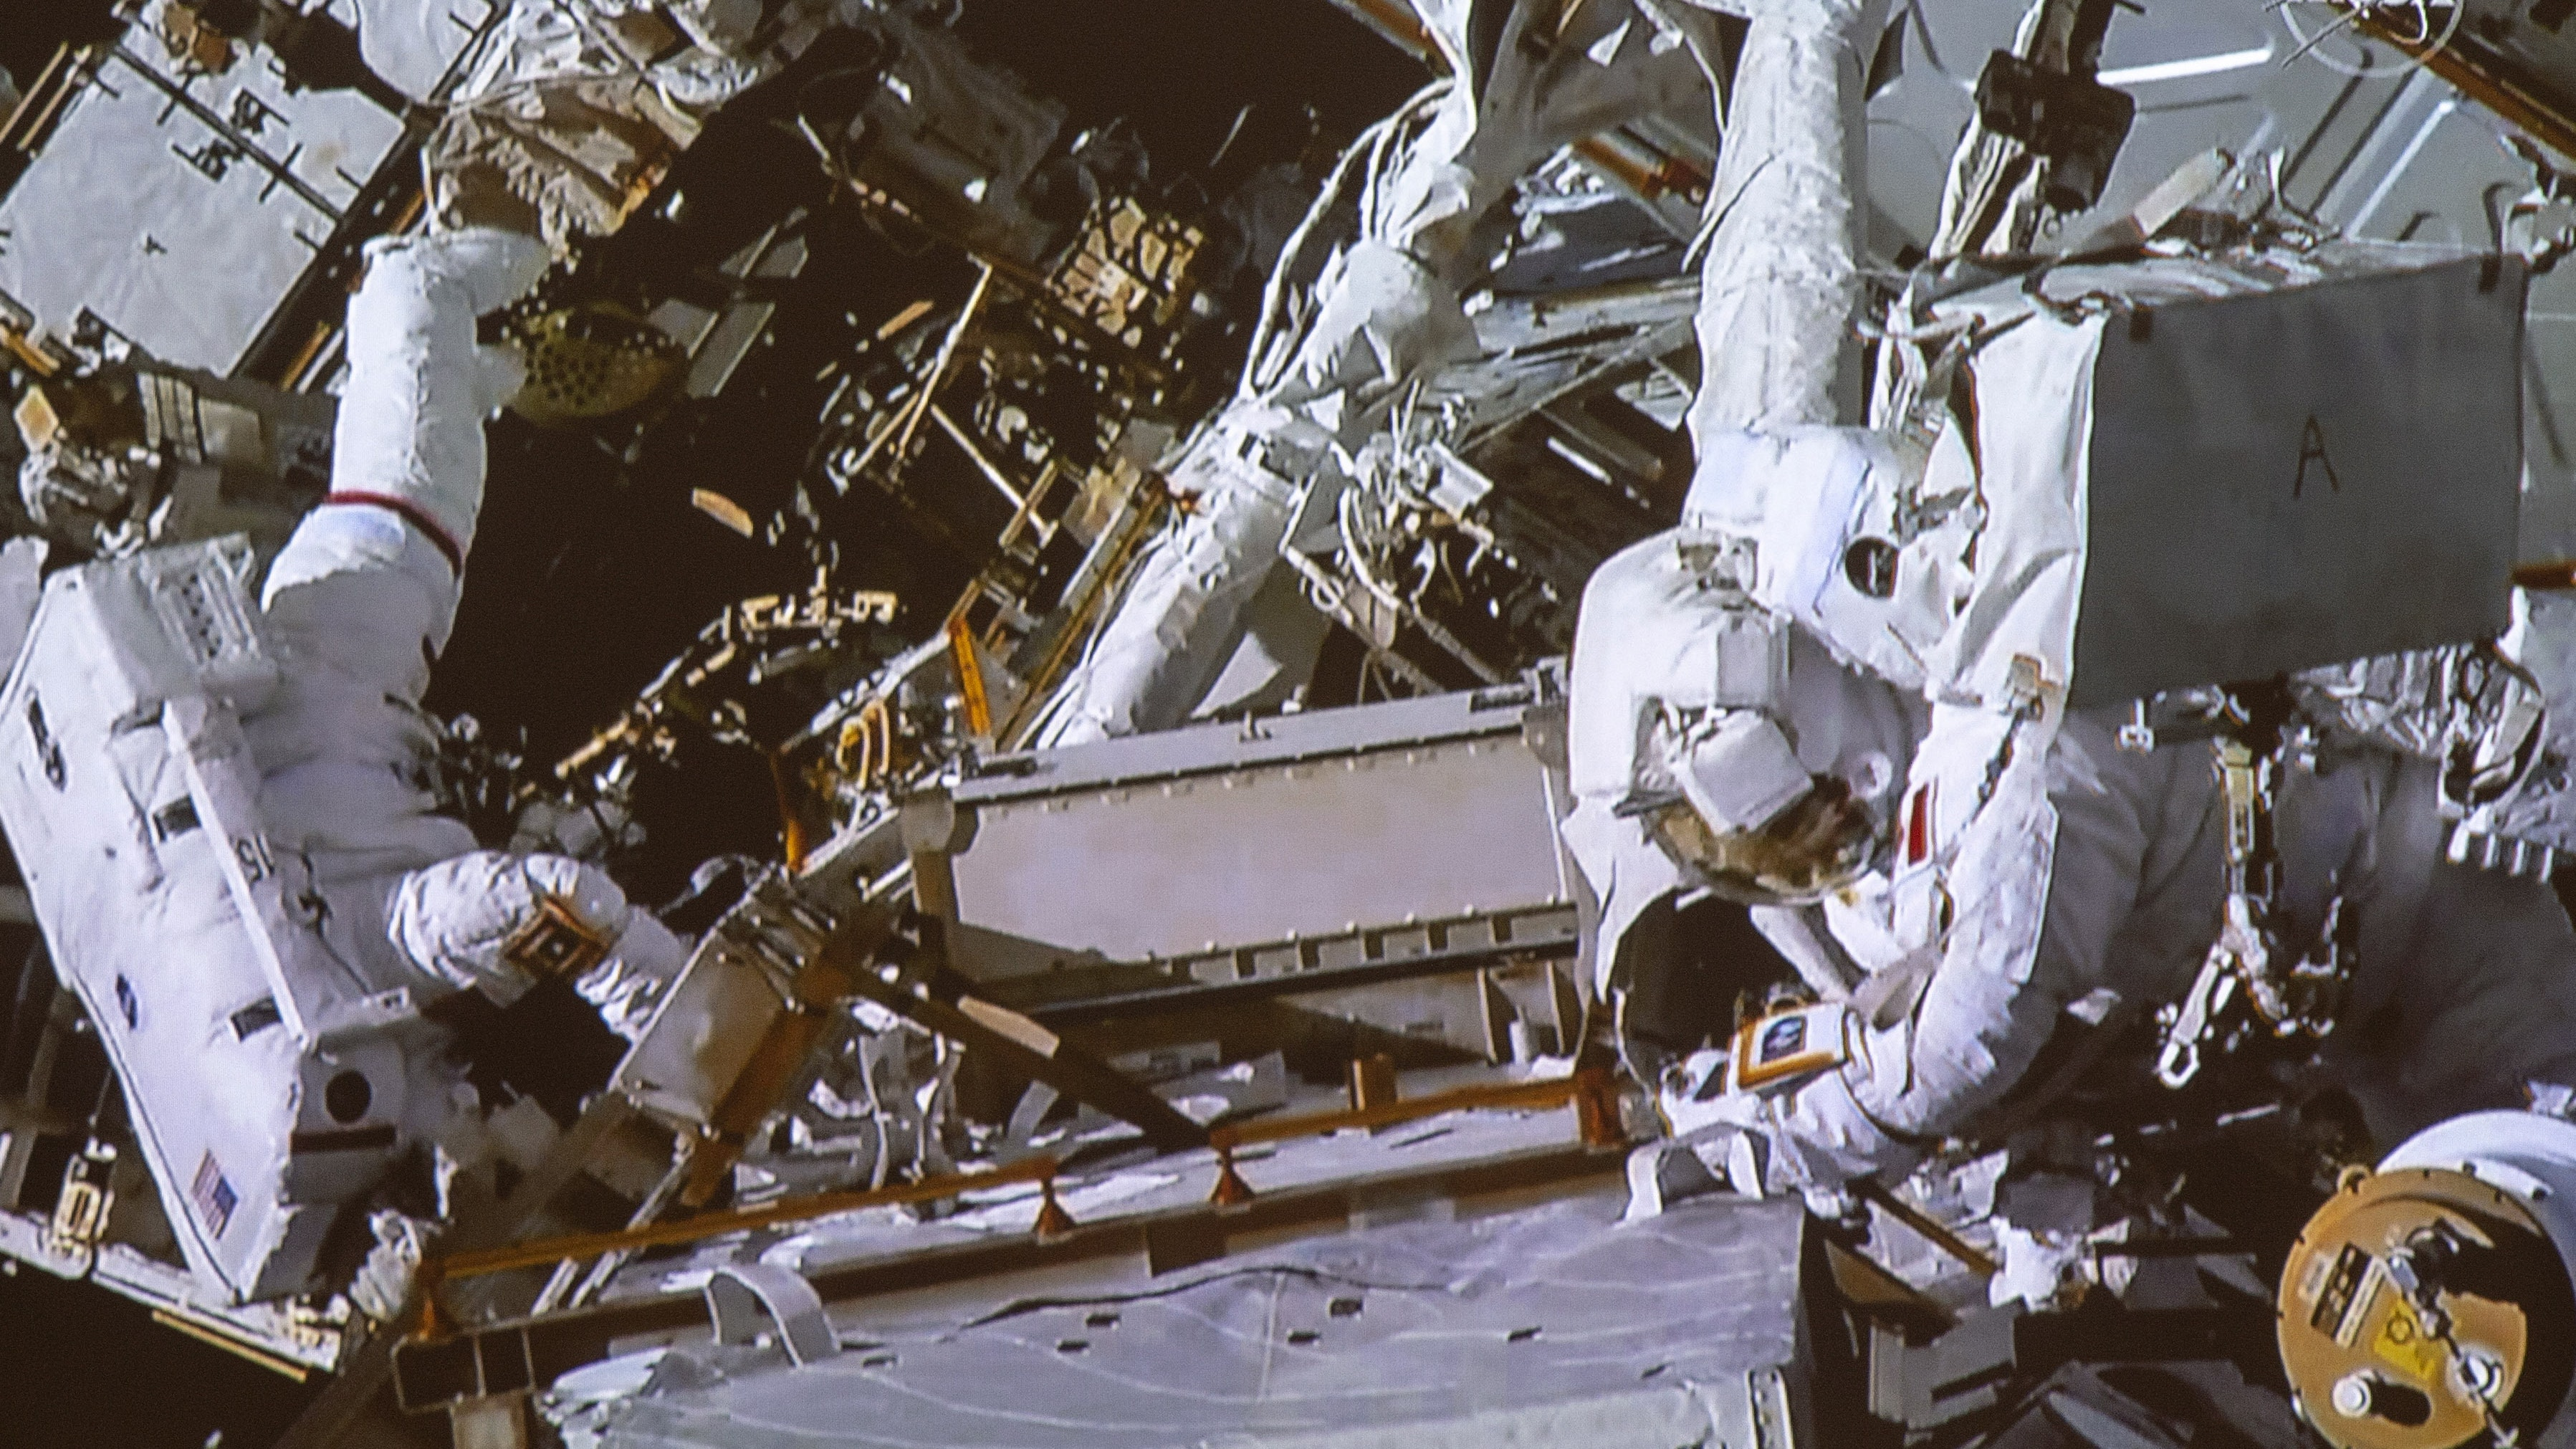 astronauts in space cannot hear sounds from outside their spacesuits - photo #1